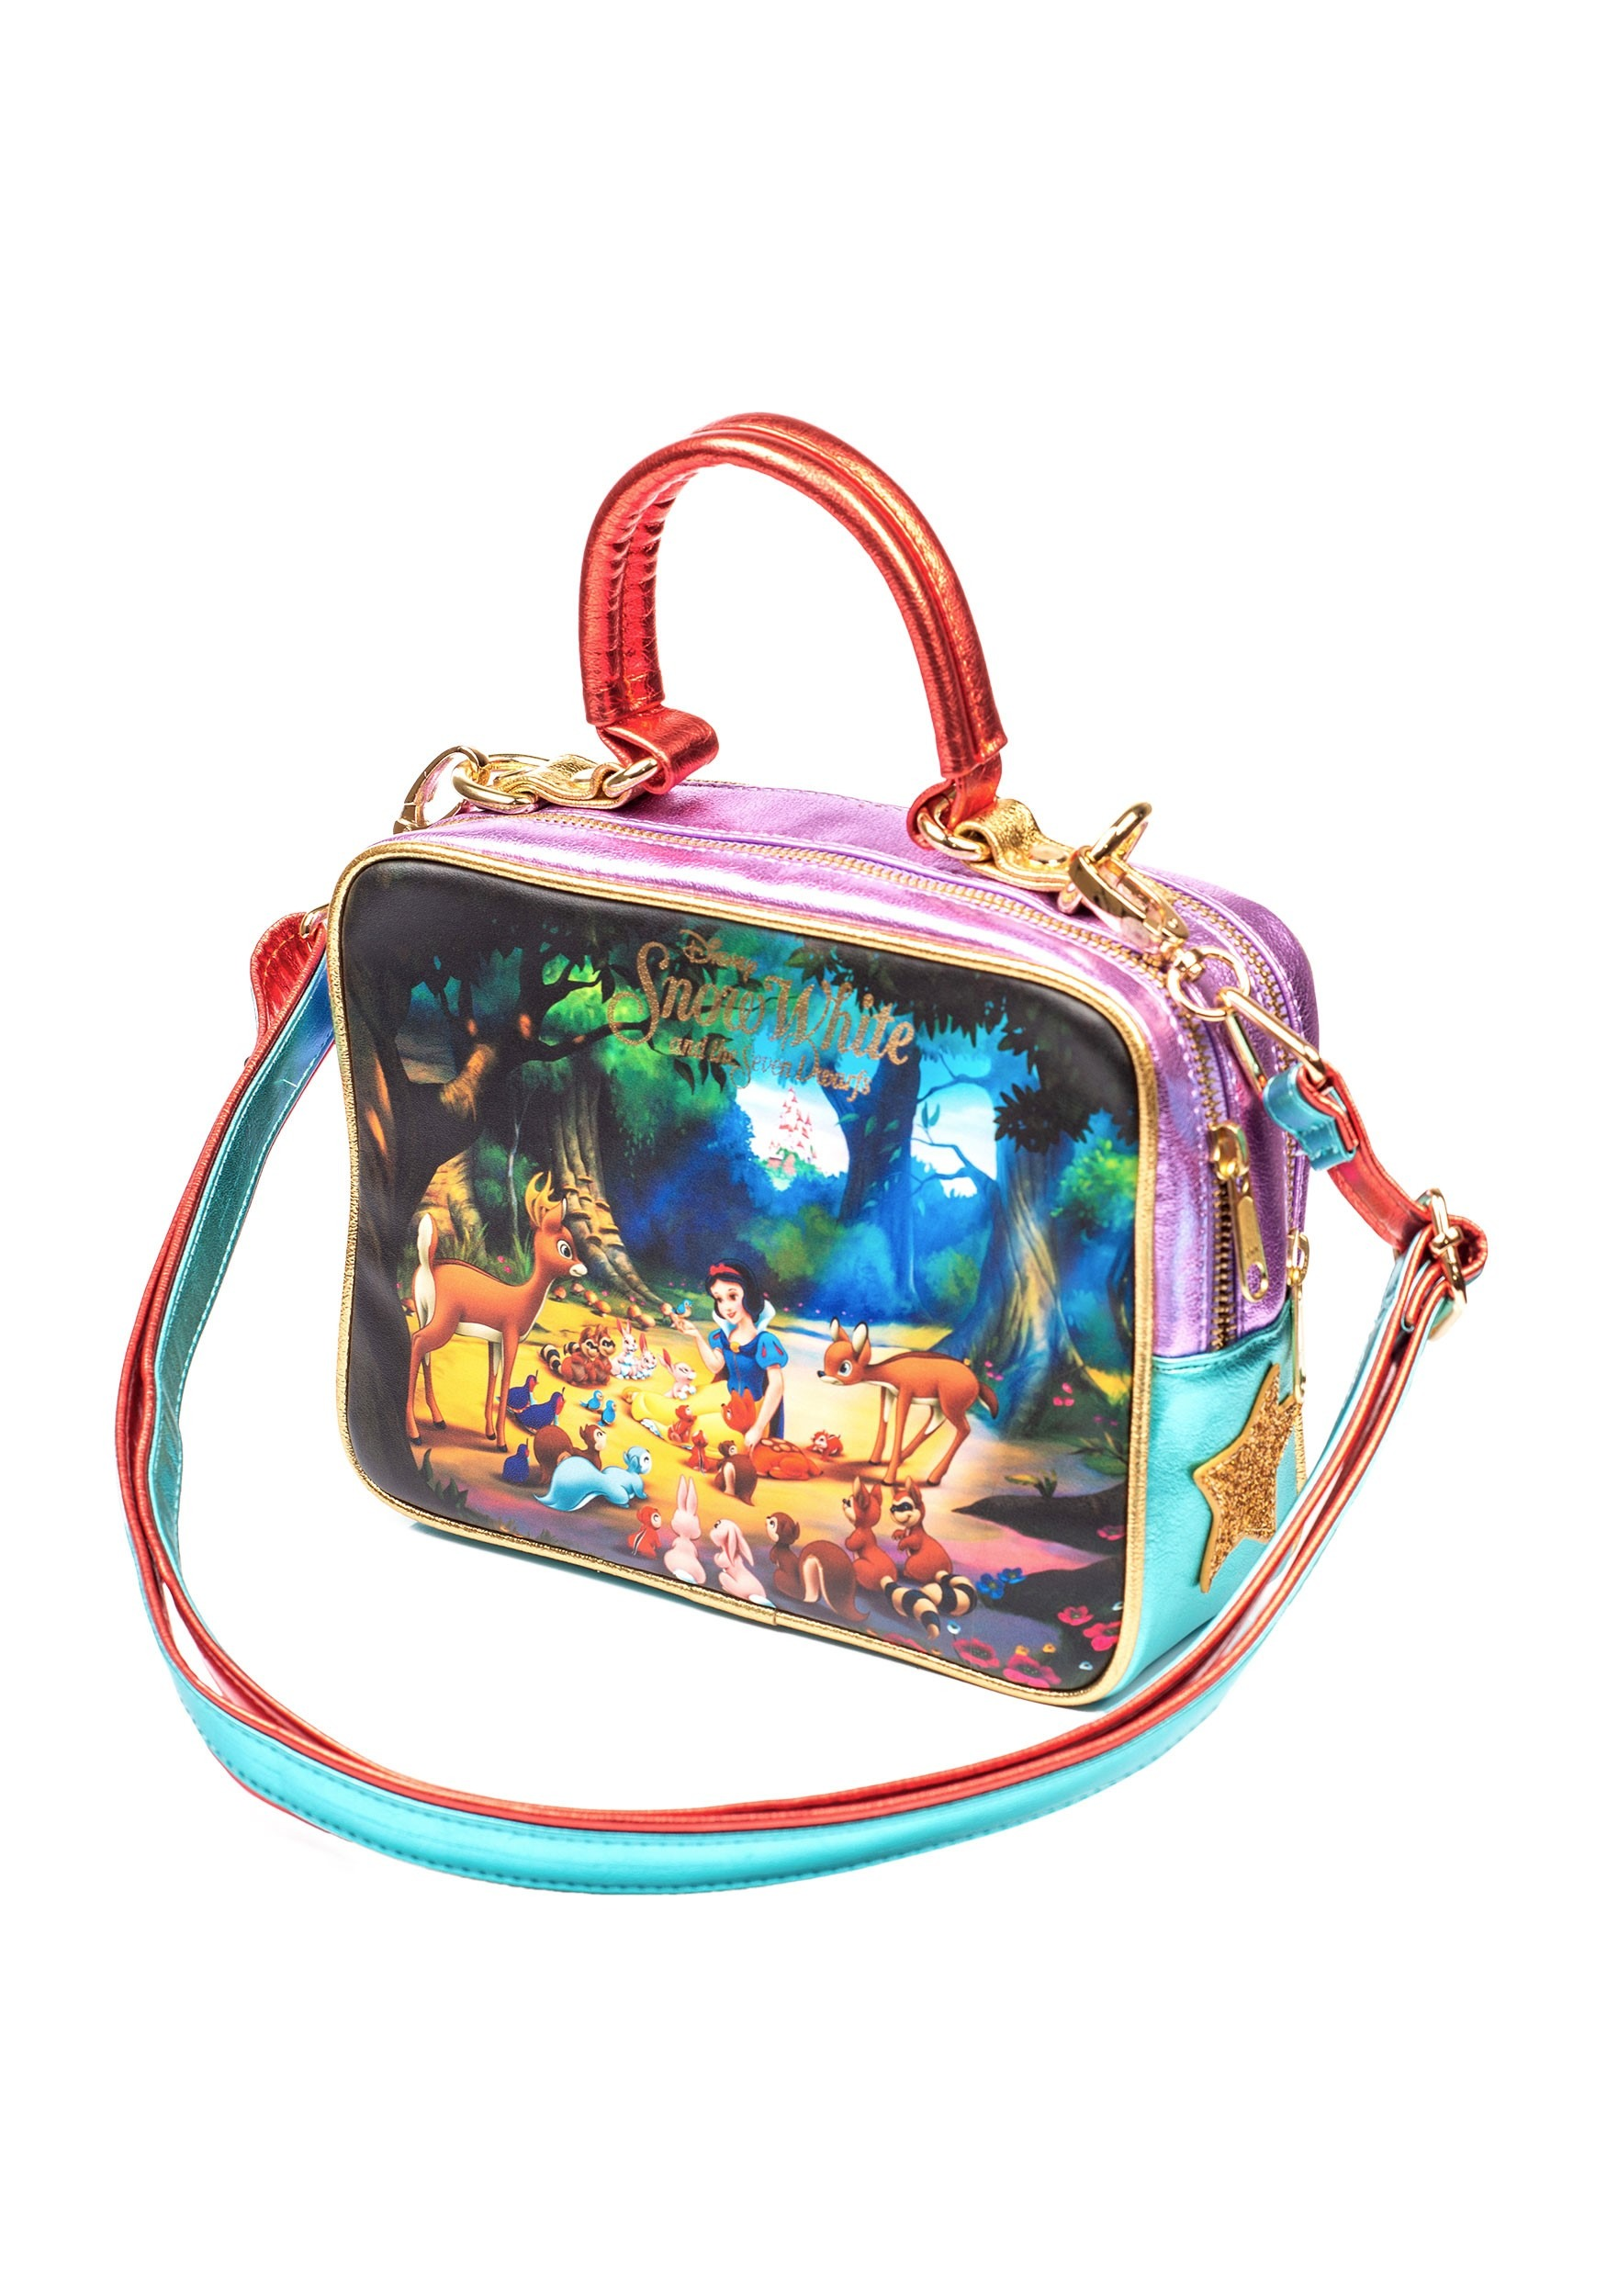 Irregular Choice Disney Princess Snow White Fairest in the Land Purse